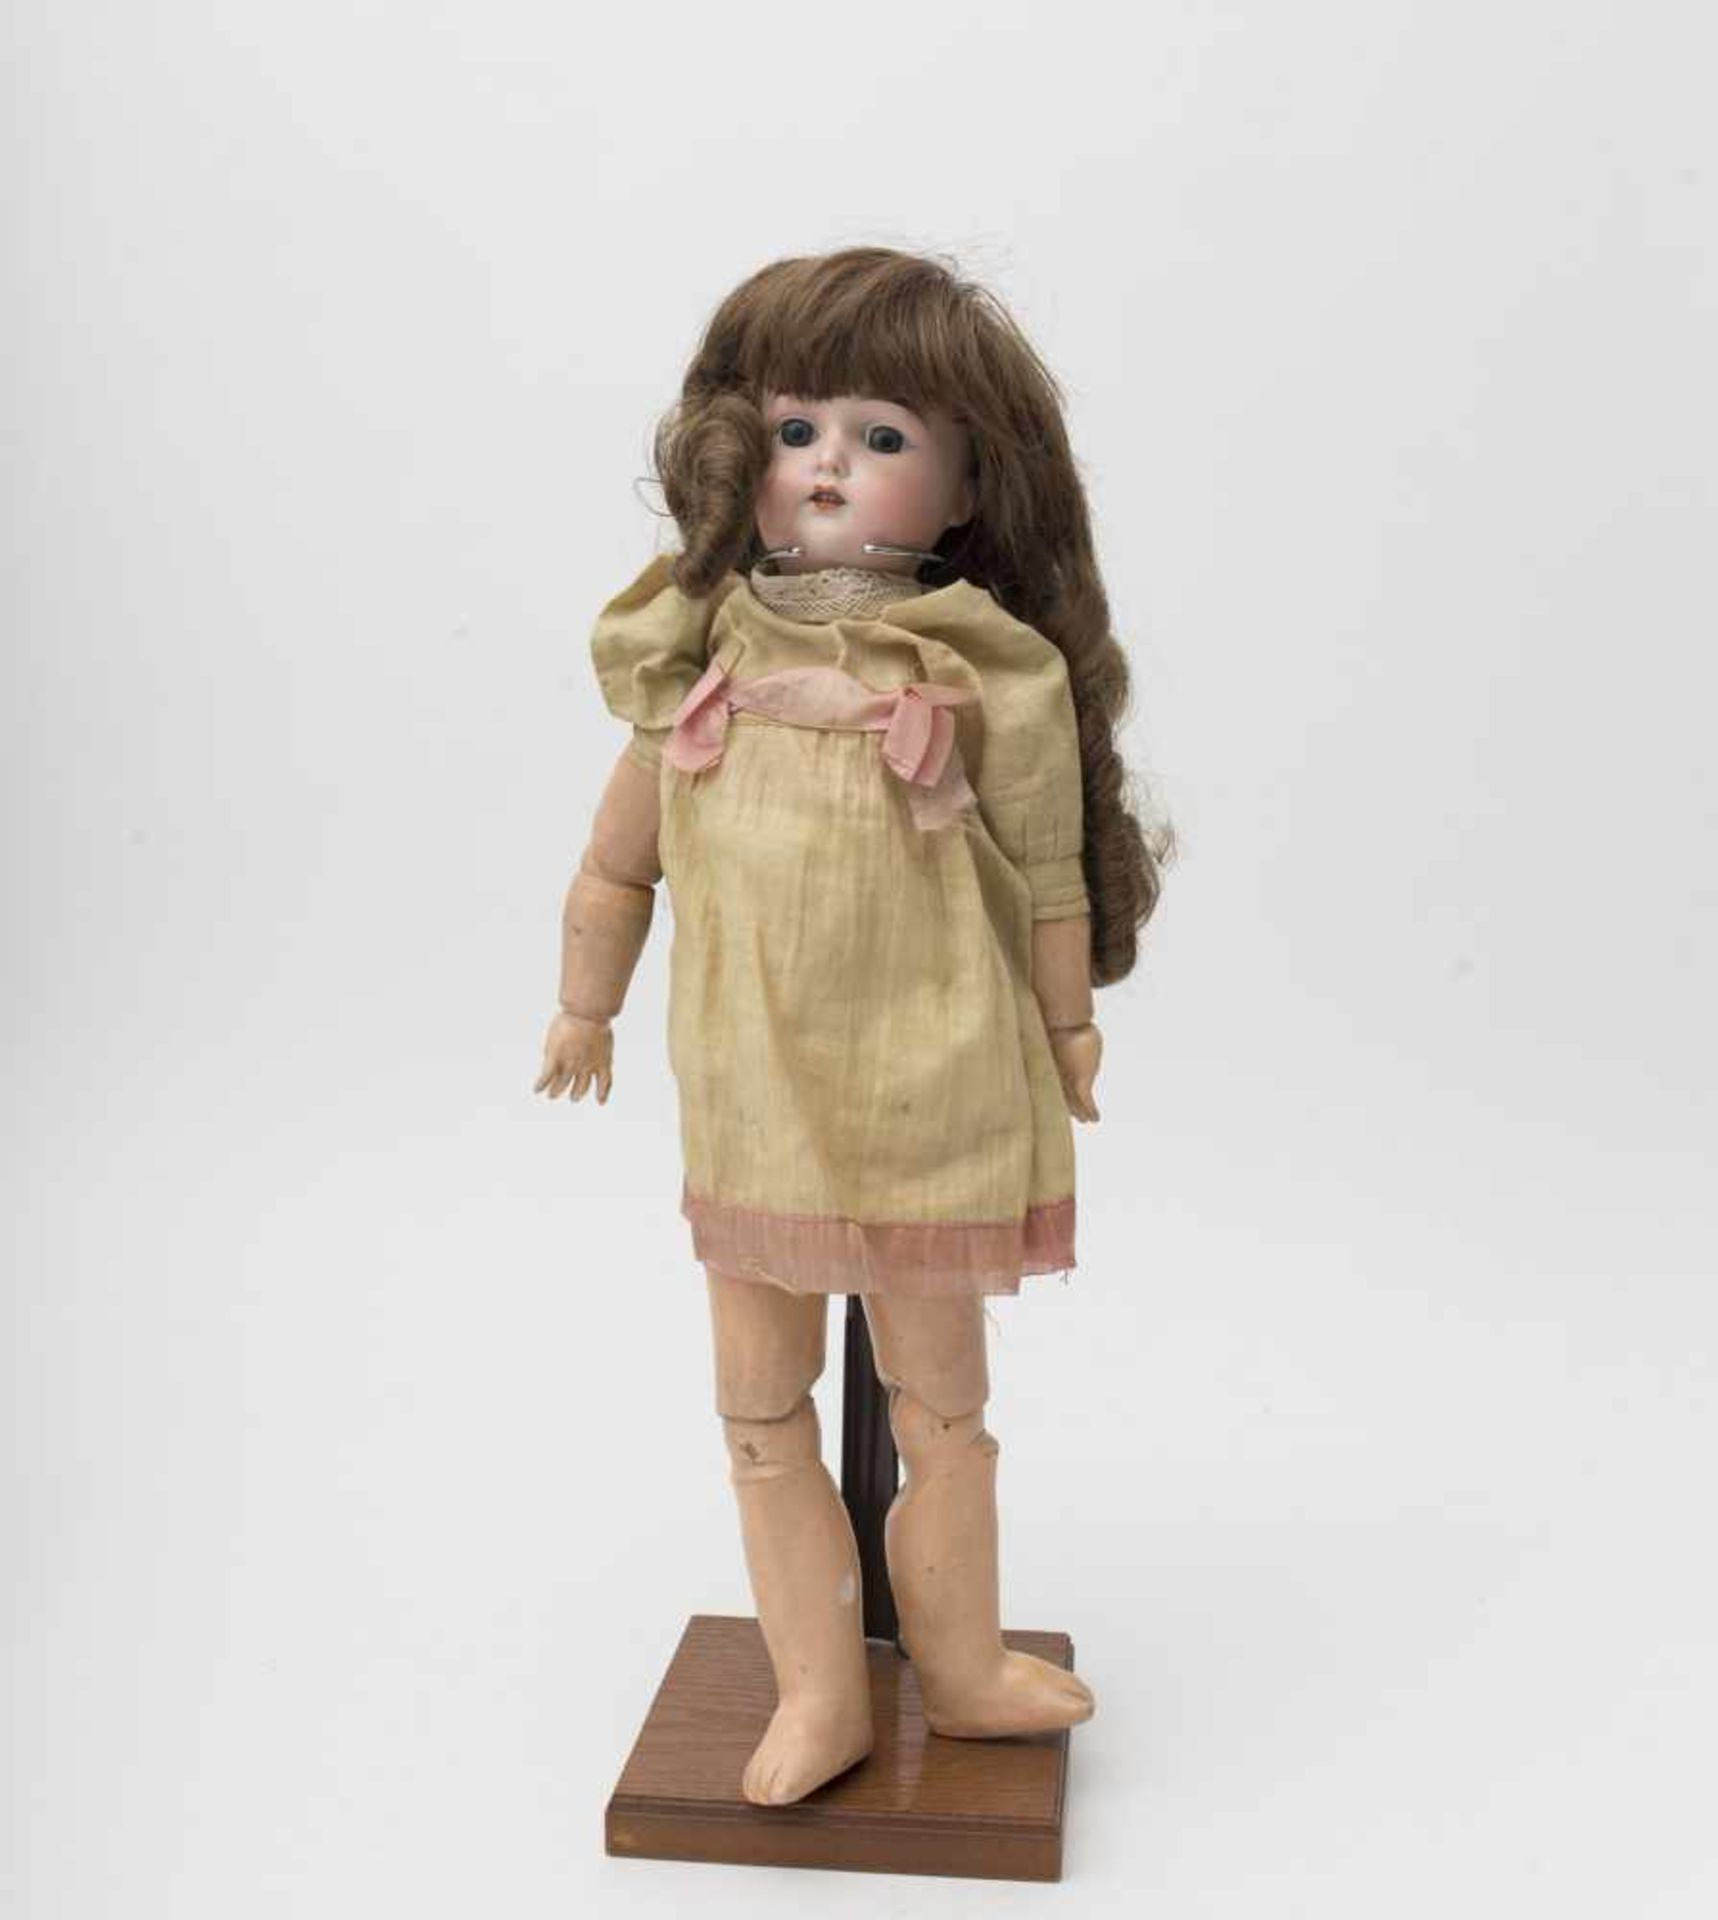 """German doll With biscuit head, open mouth, branded """"MAJESTIC A 4 ½ M"""", fixed blue eyes, original"""